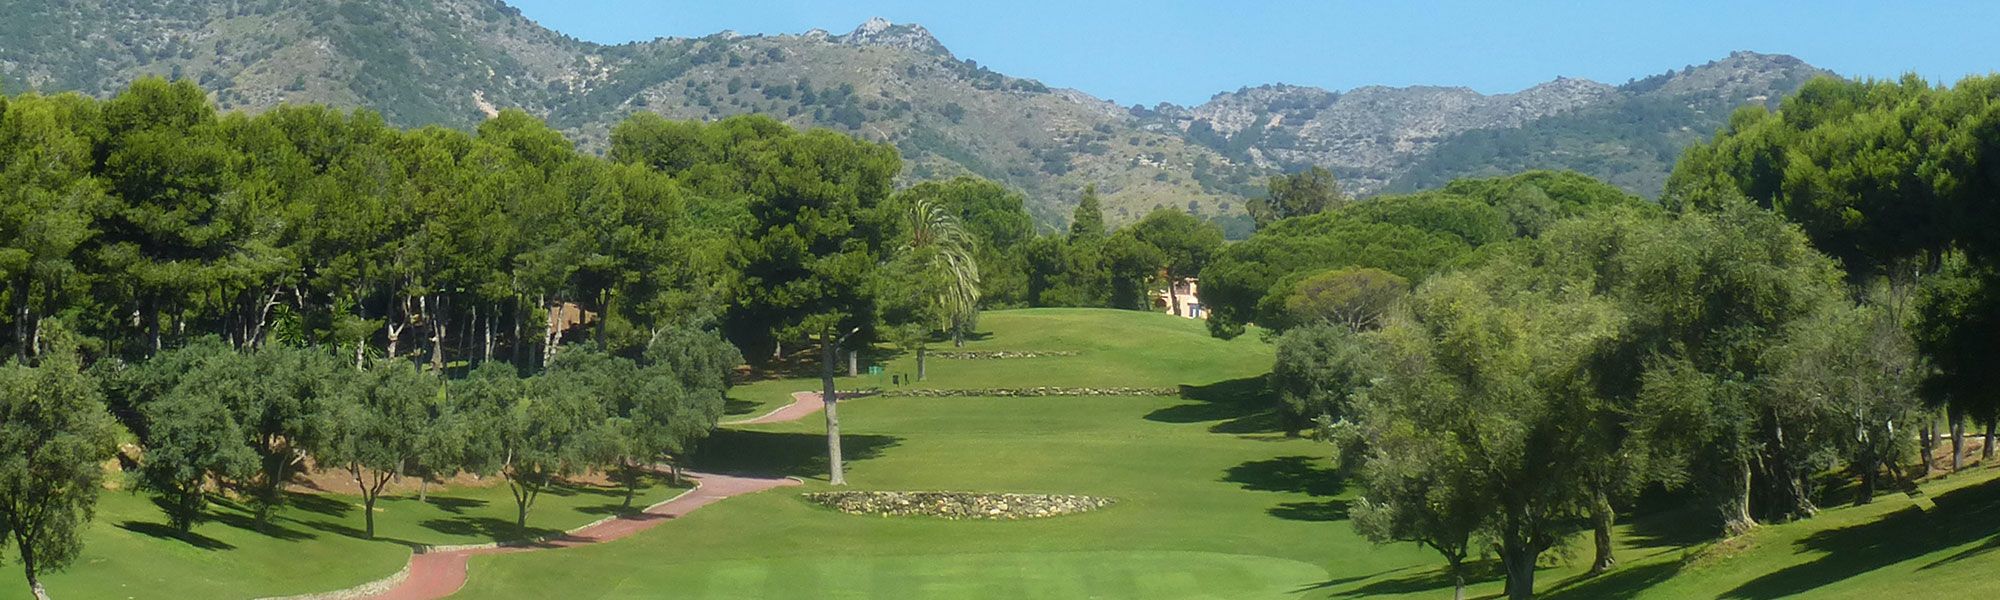 Benahavis Golf Courses